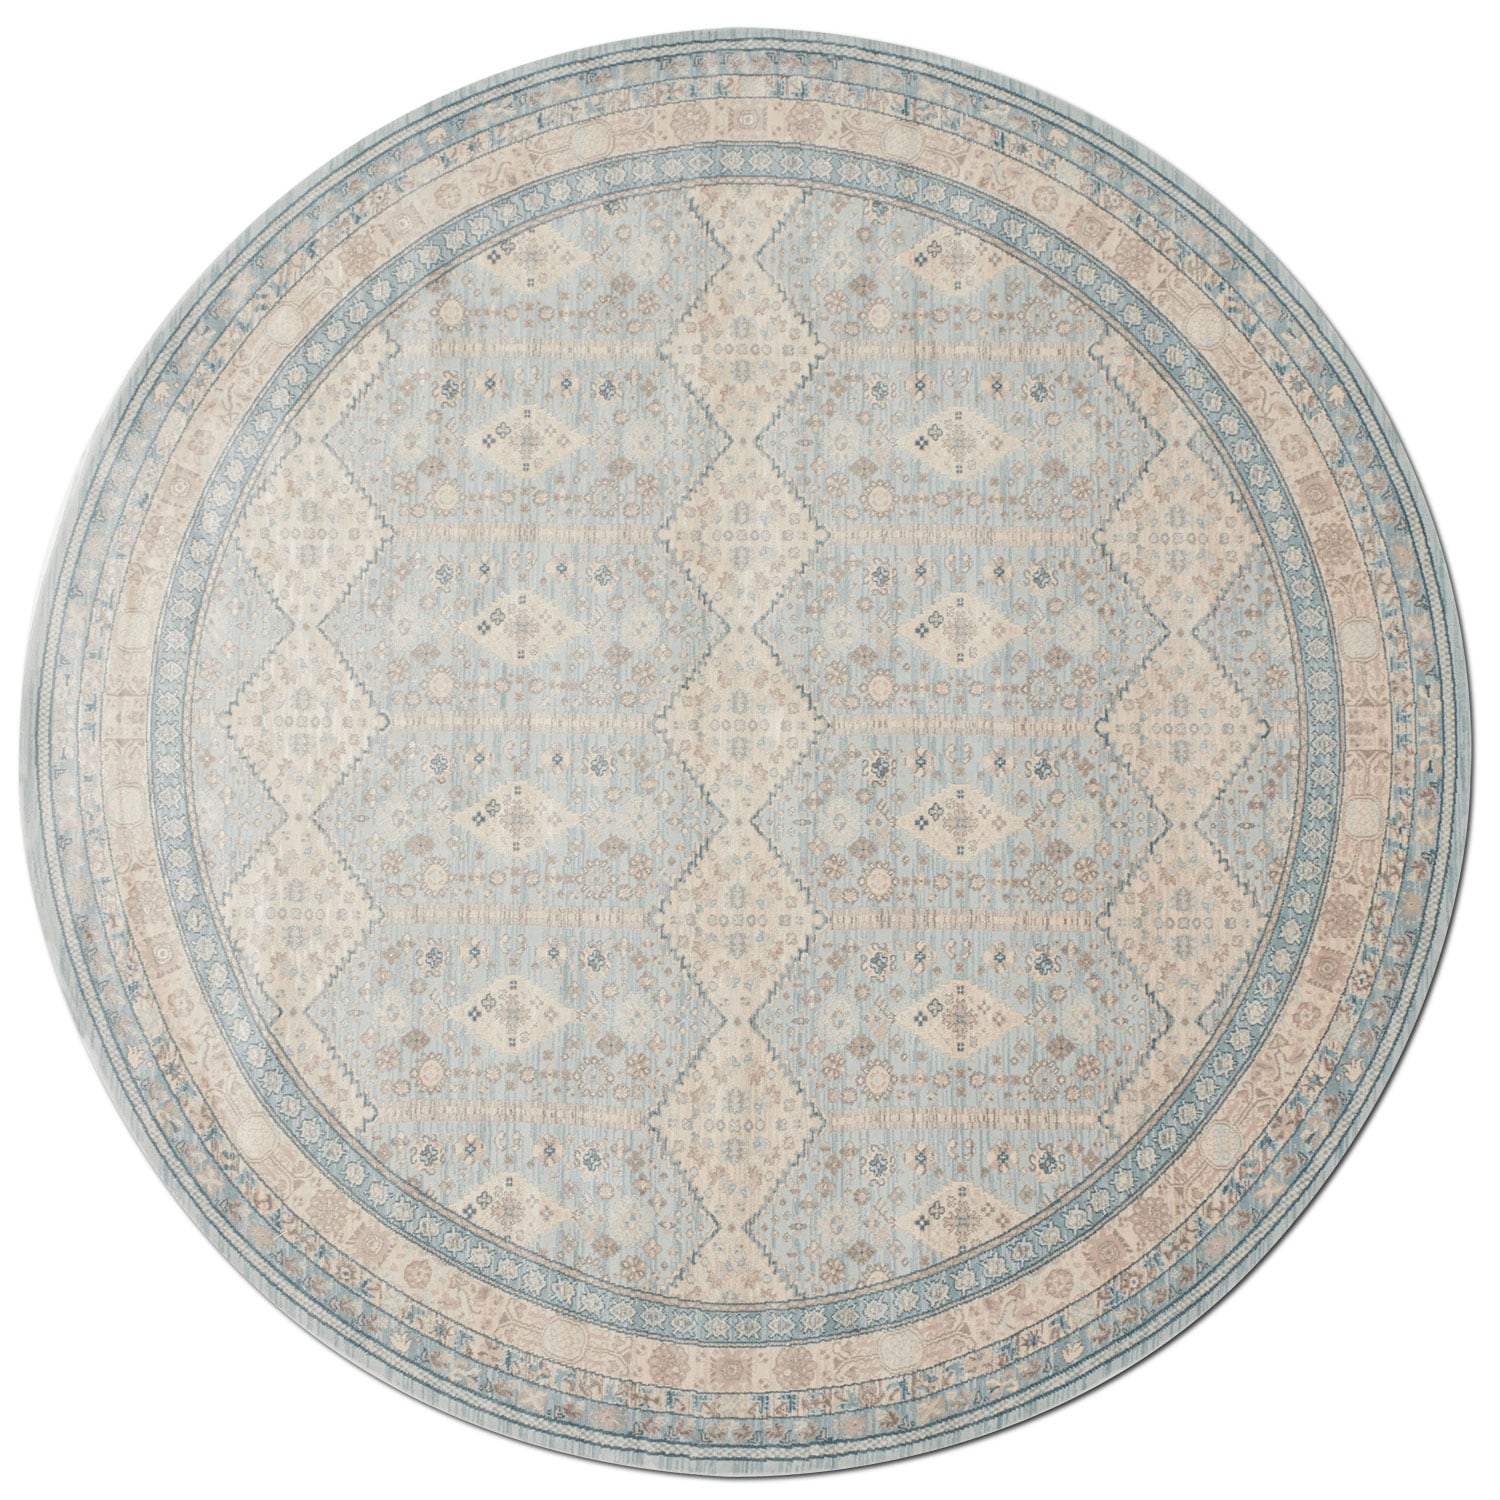 Ella Rose 8' Round Rug - Mist and Stone